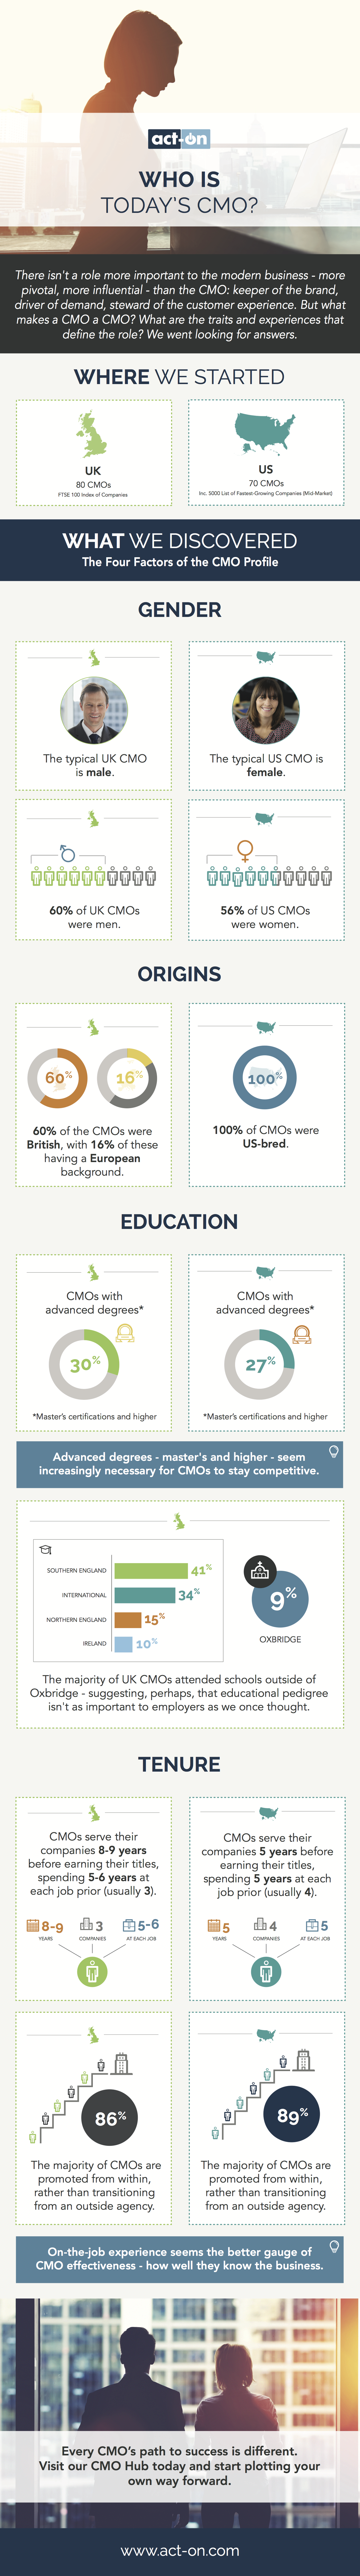 Act On 2017 CMO Index Infographic Final 1 1